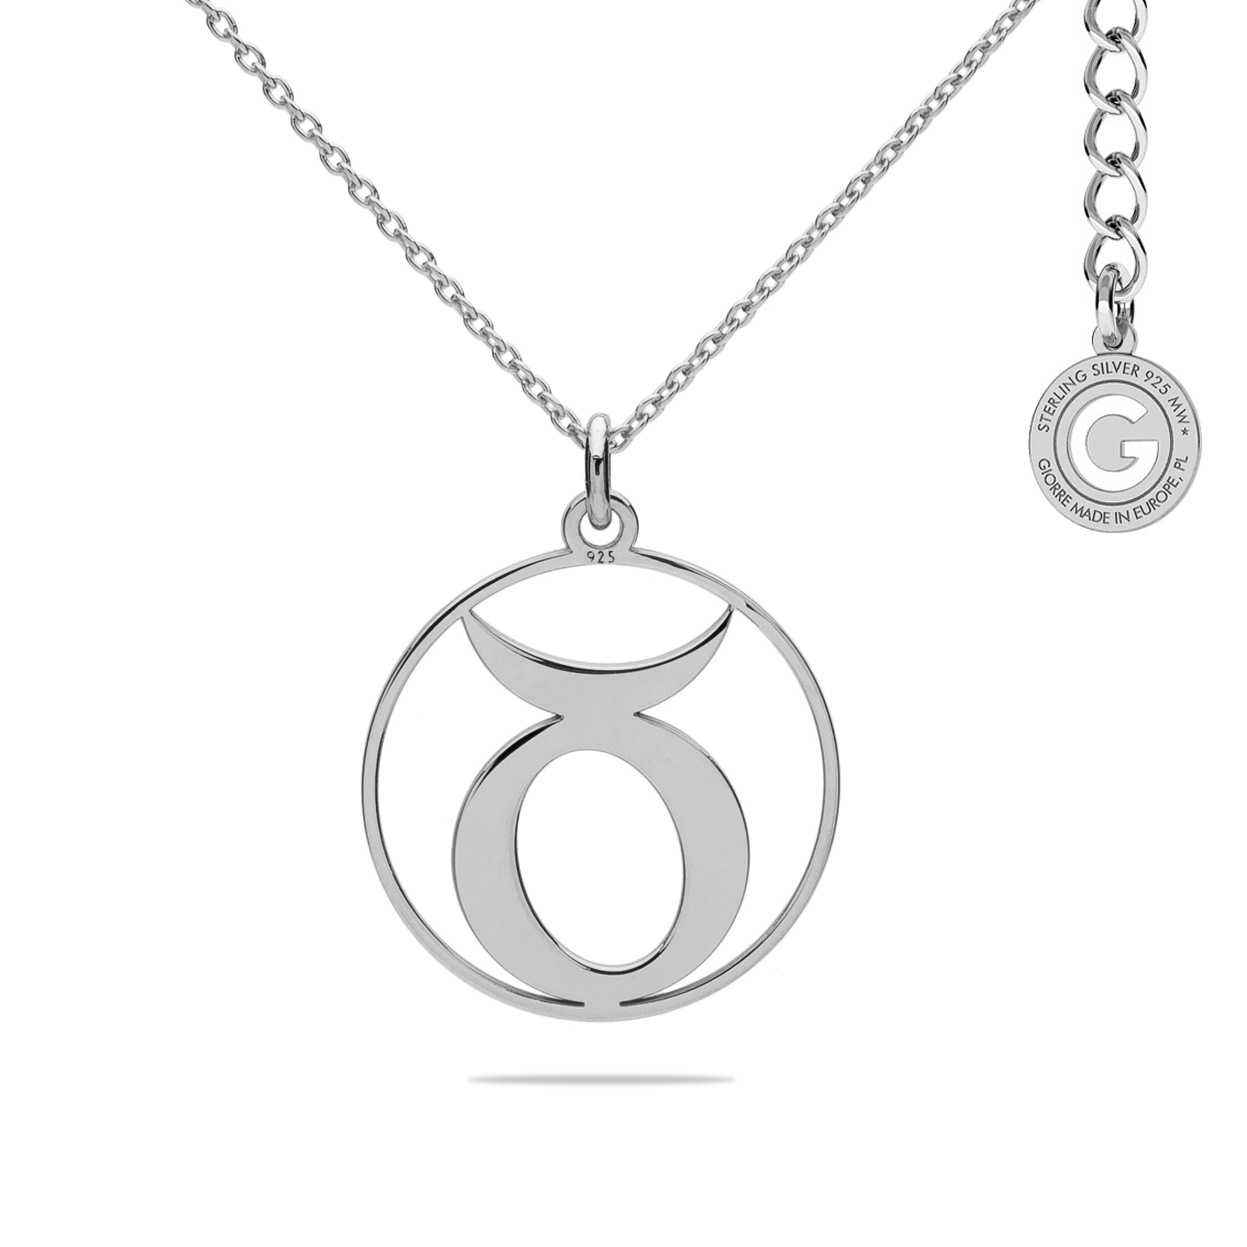 TAURUS ZODIAC SIGN NECKLACE SILVER 925